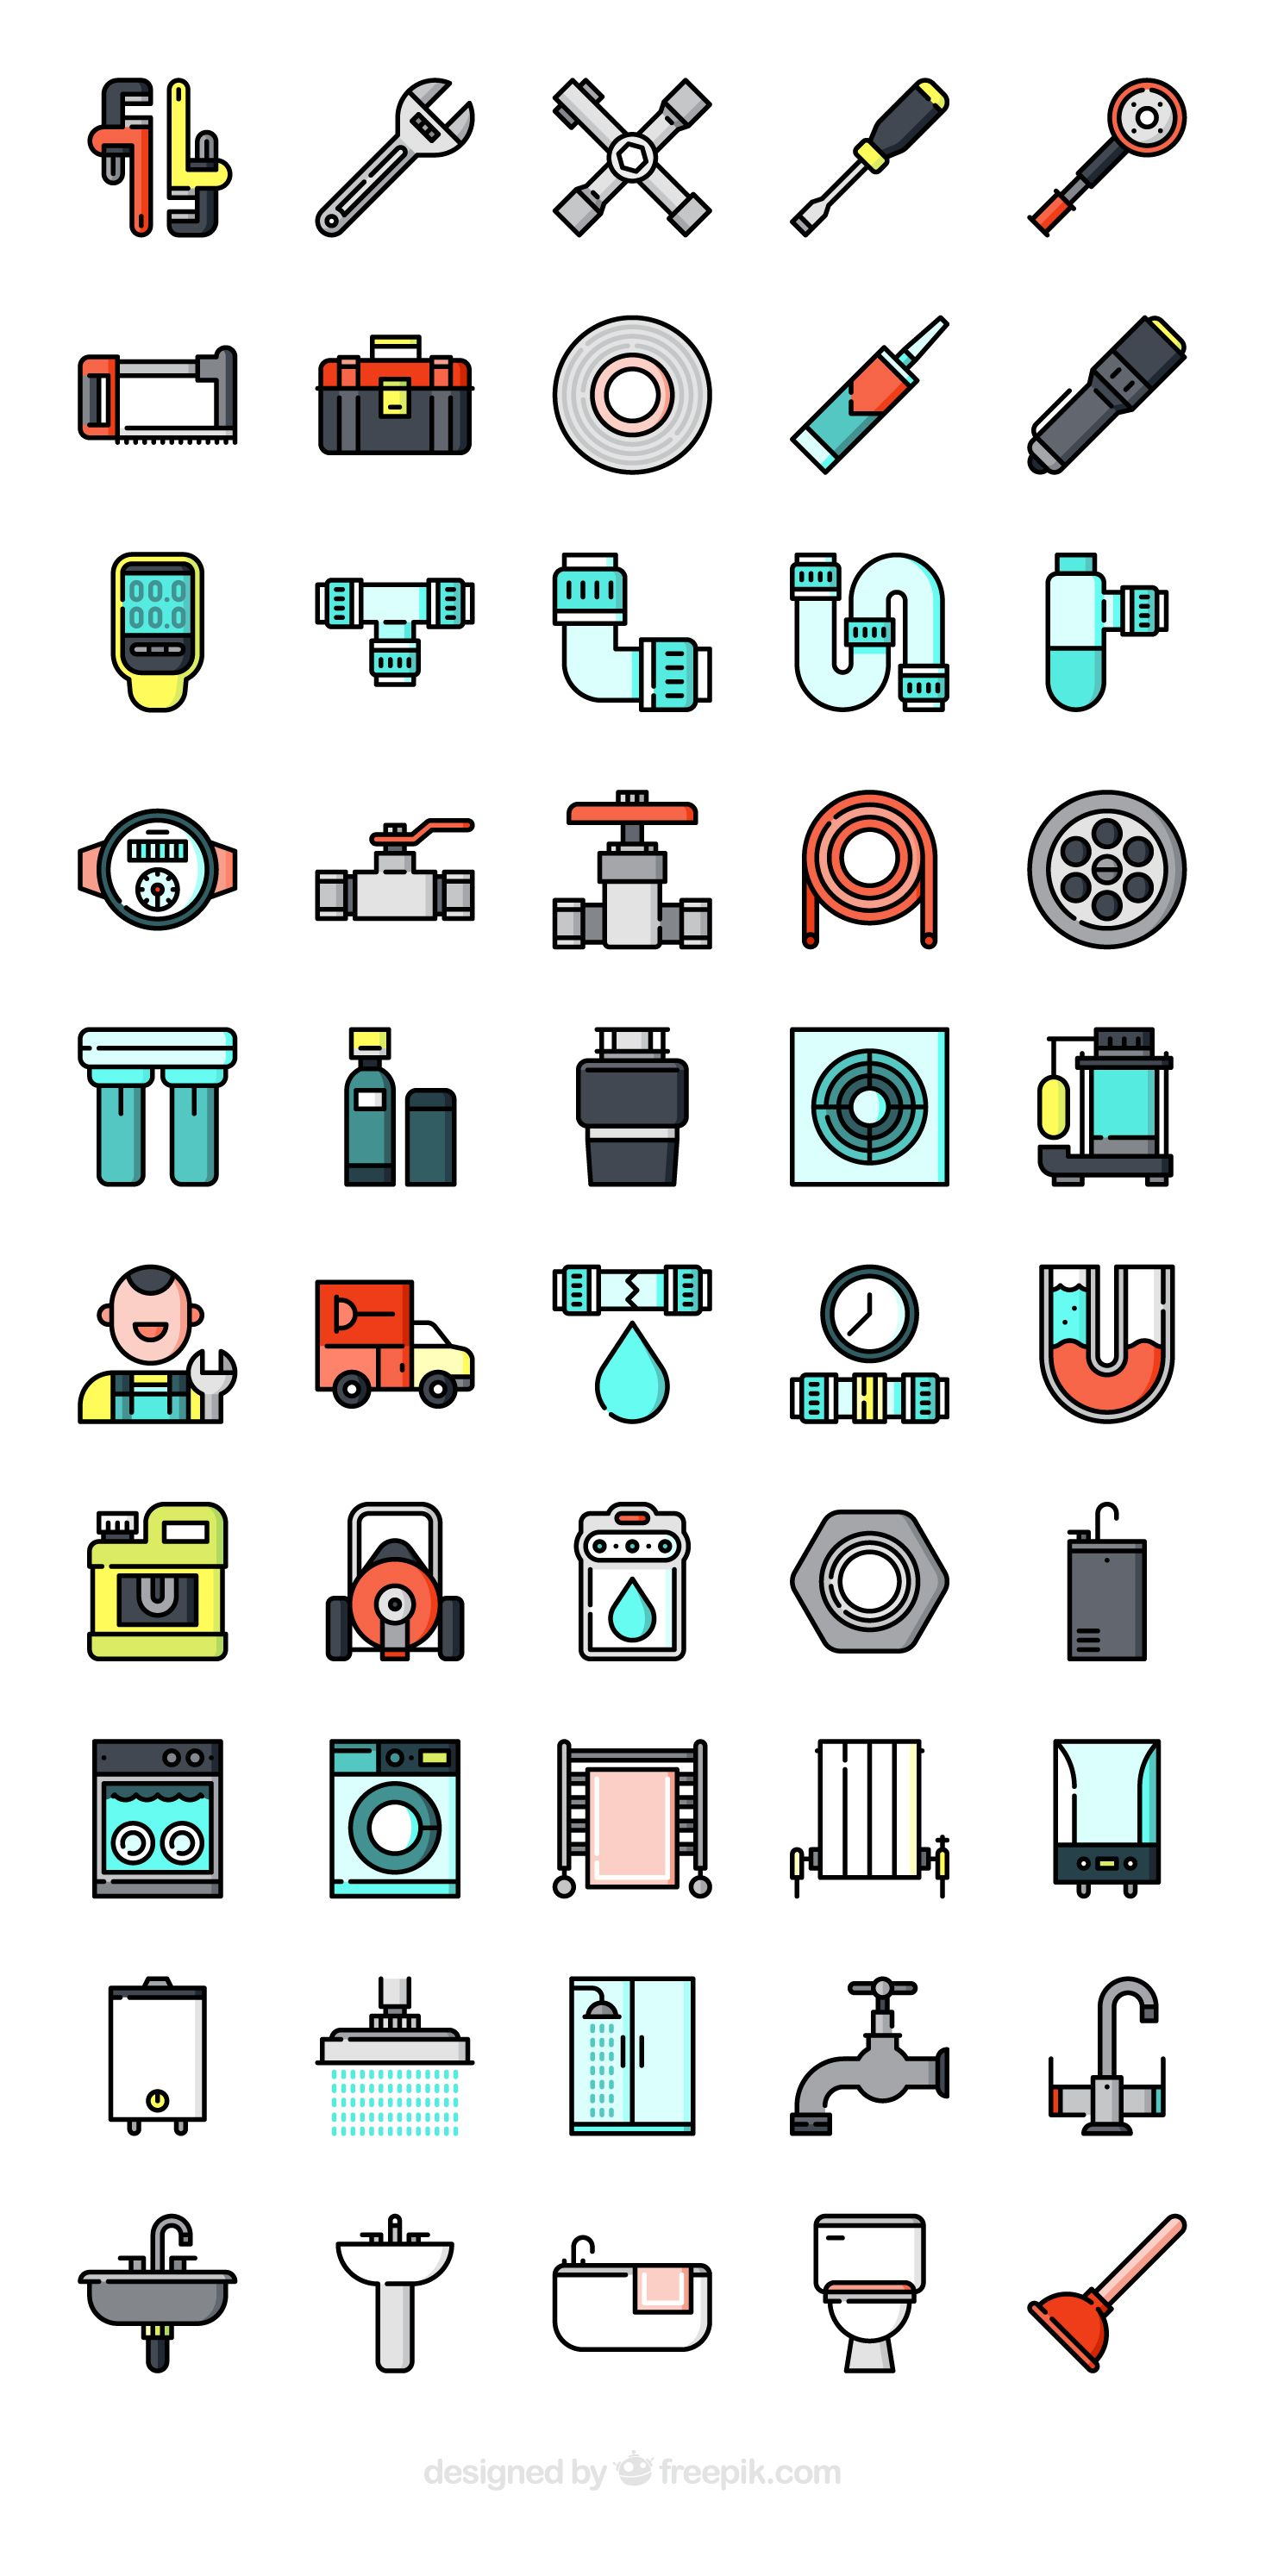 50 free vector icons of Plumber tools and elements